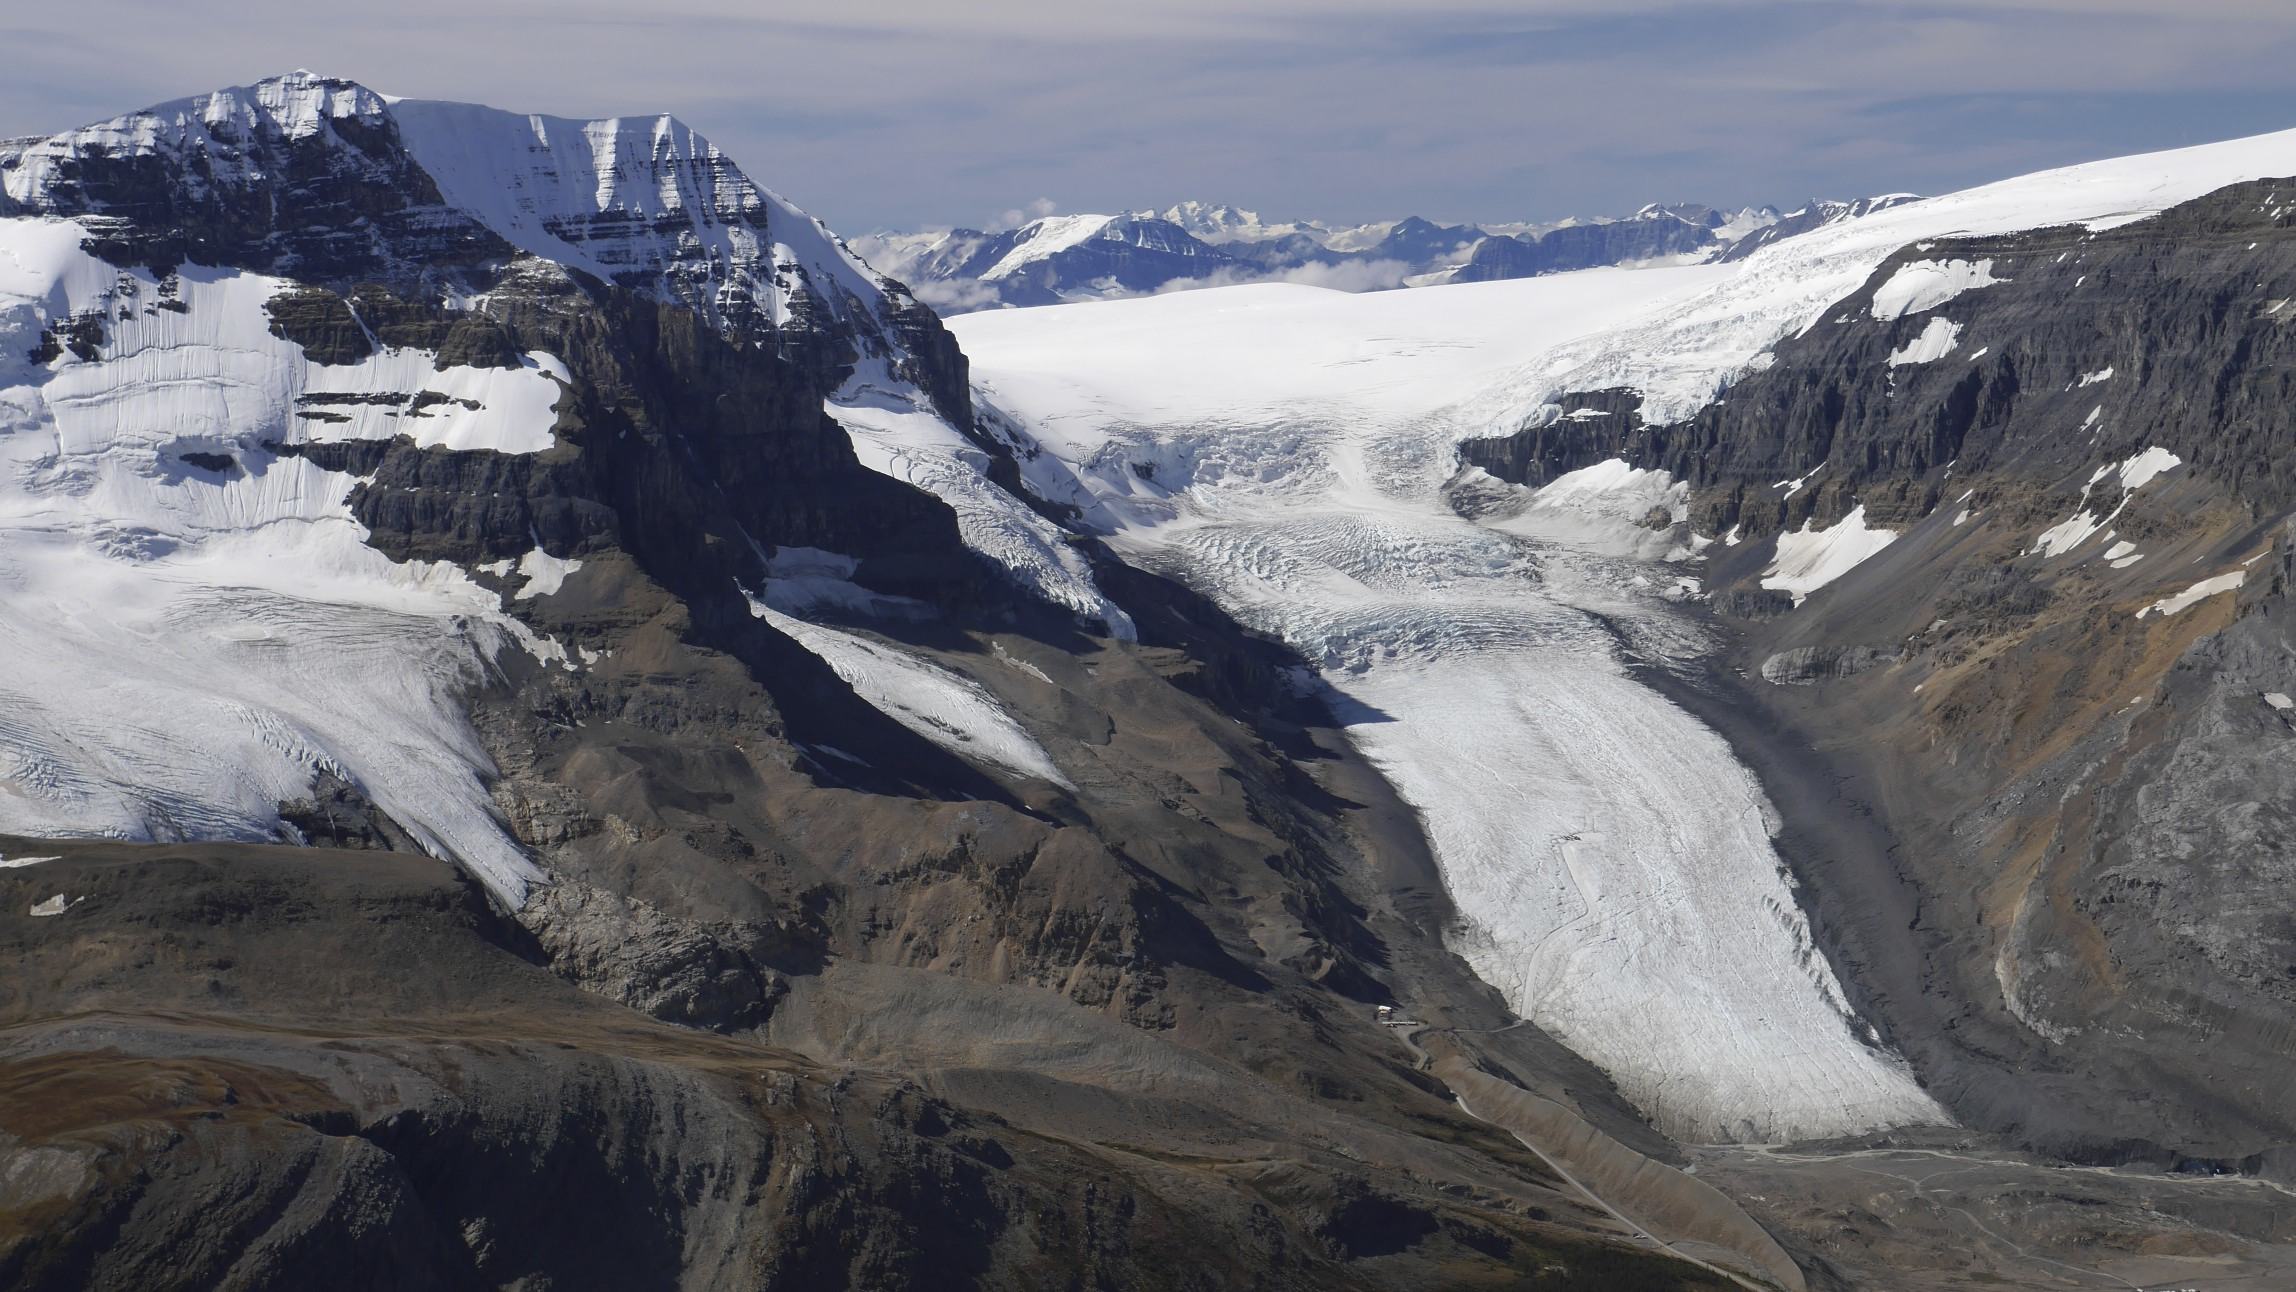 Athabasca Glacier and Columbia Icefield from Nigel Peak 3,211m